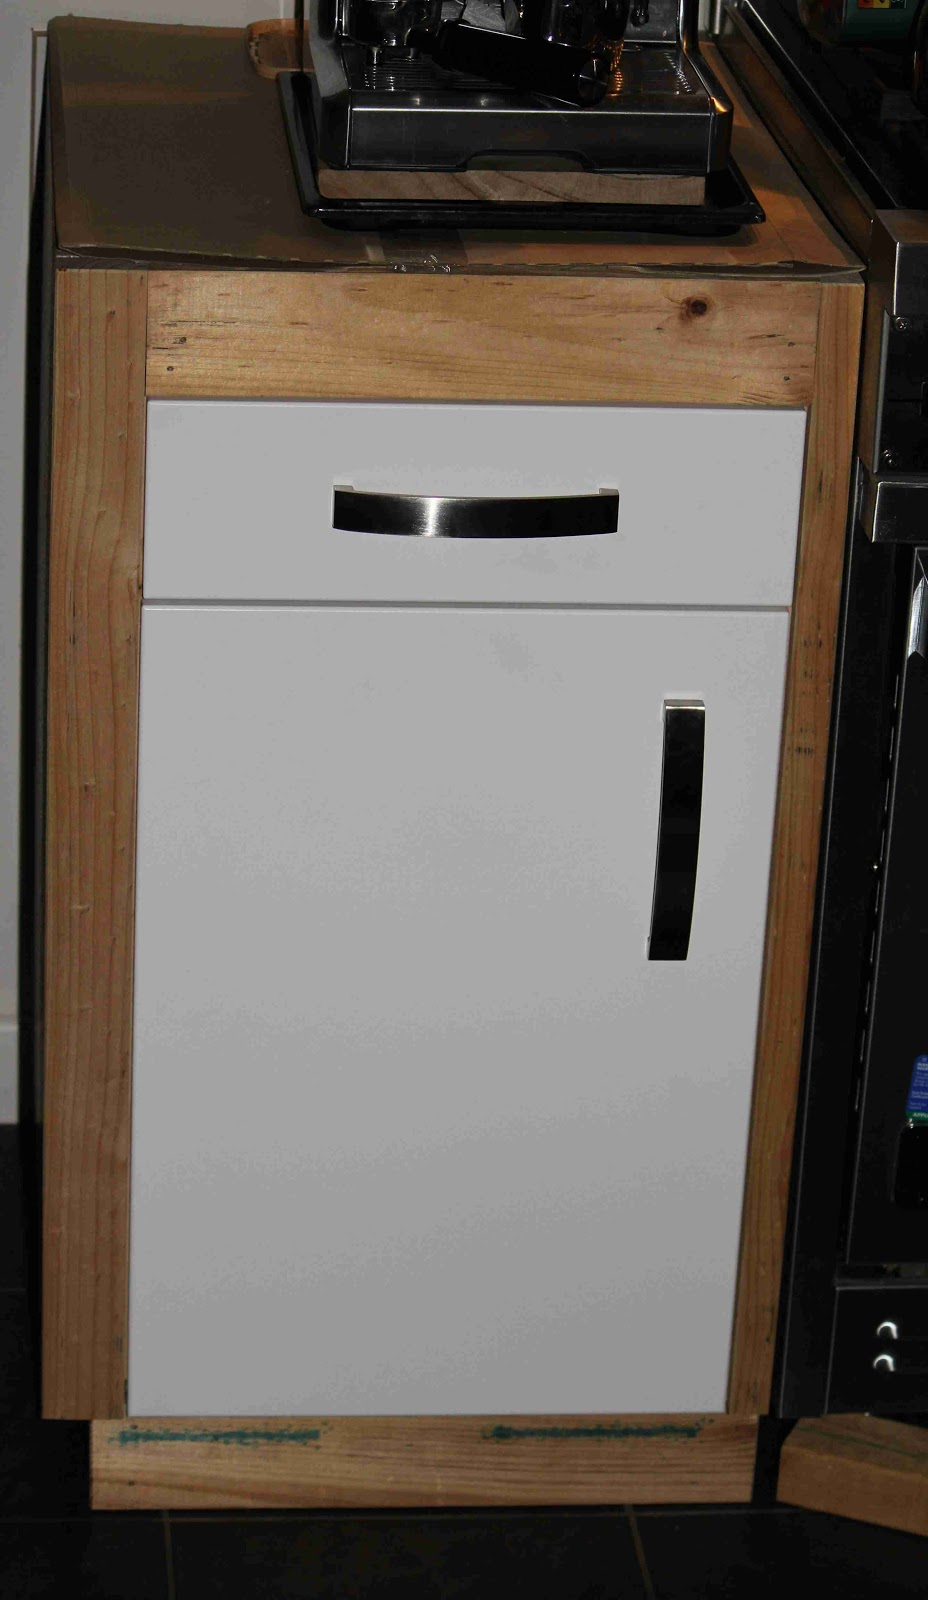 Blog De VK5HSE: IKEA Mounting Hole Dimensions   In Case You Need To Make A  Custom Cabinet